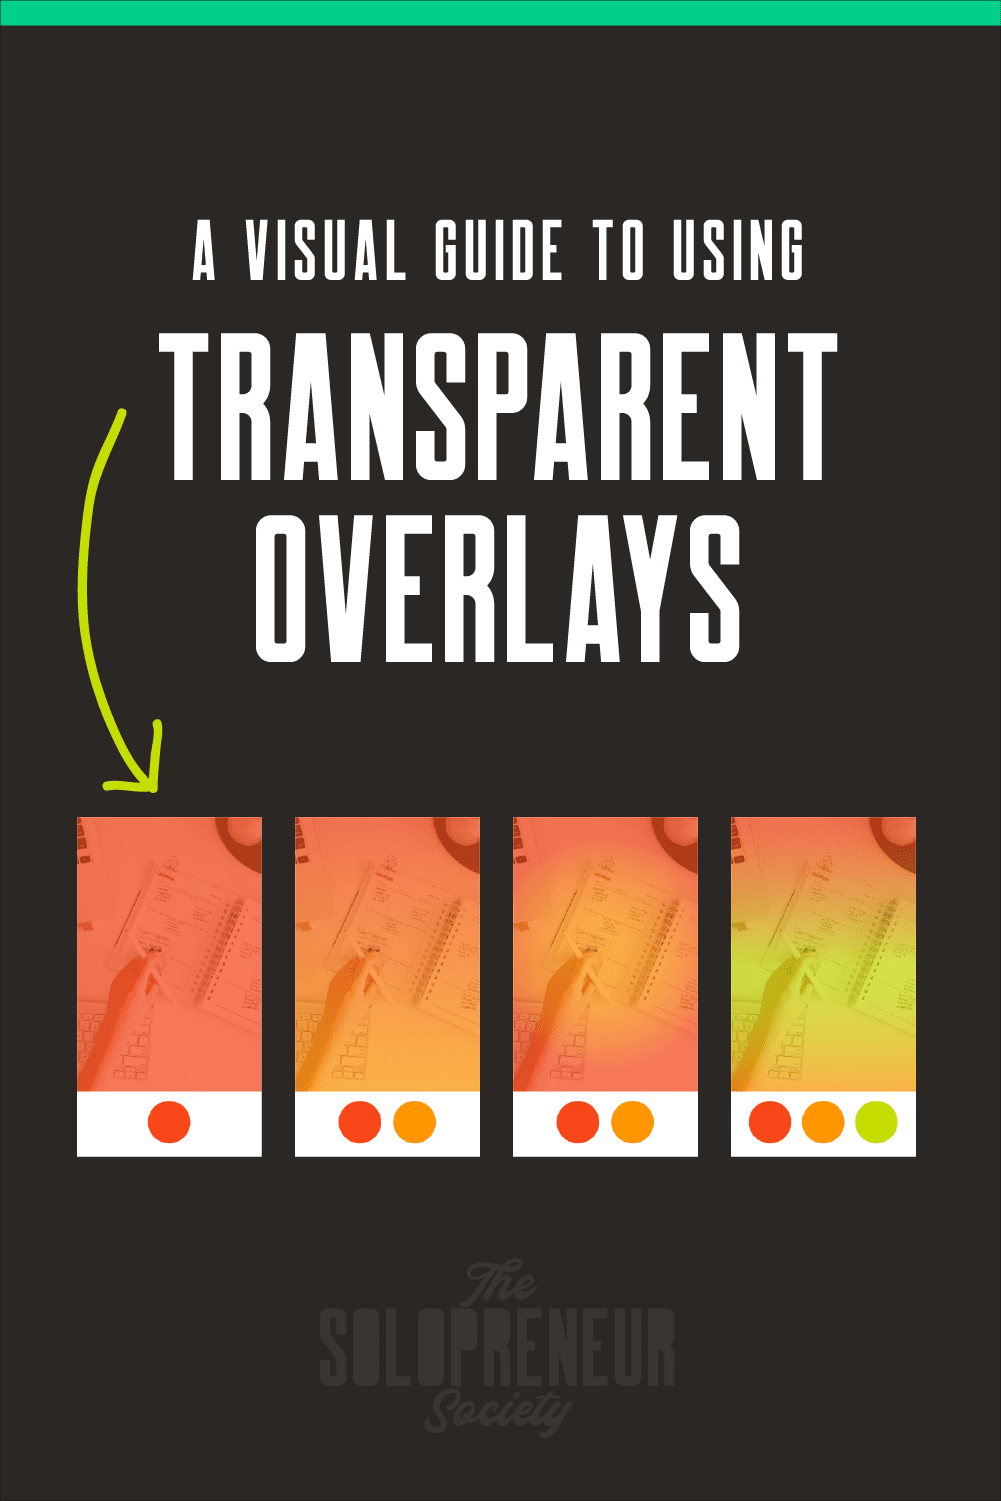 A Visual Guide to Using Transparent Overlays the Right Way